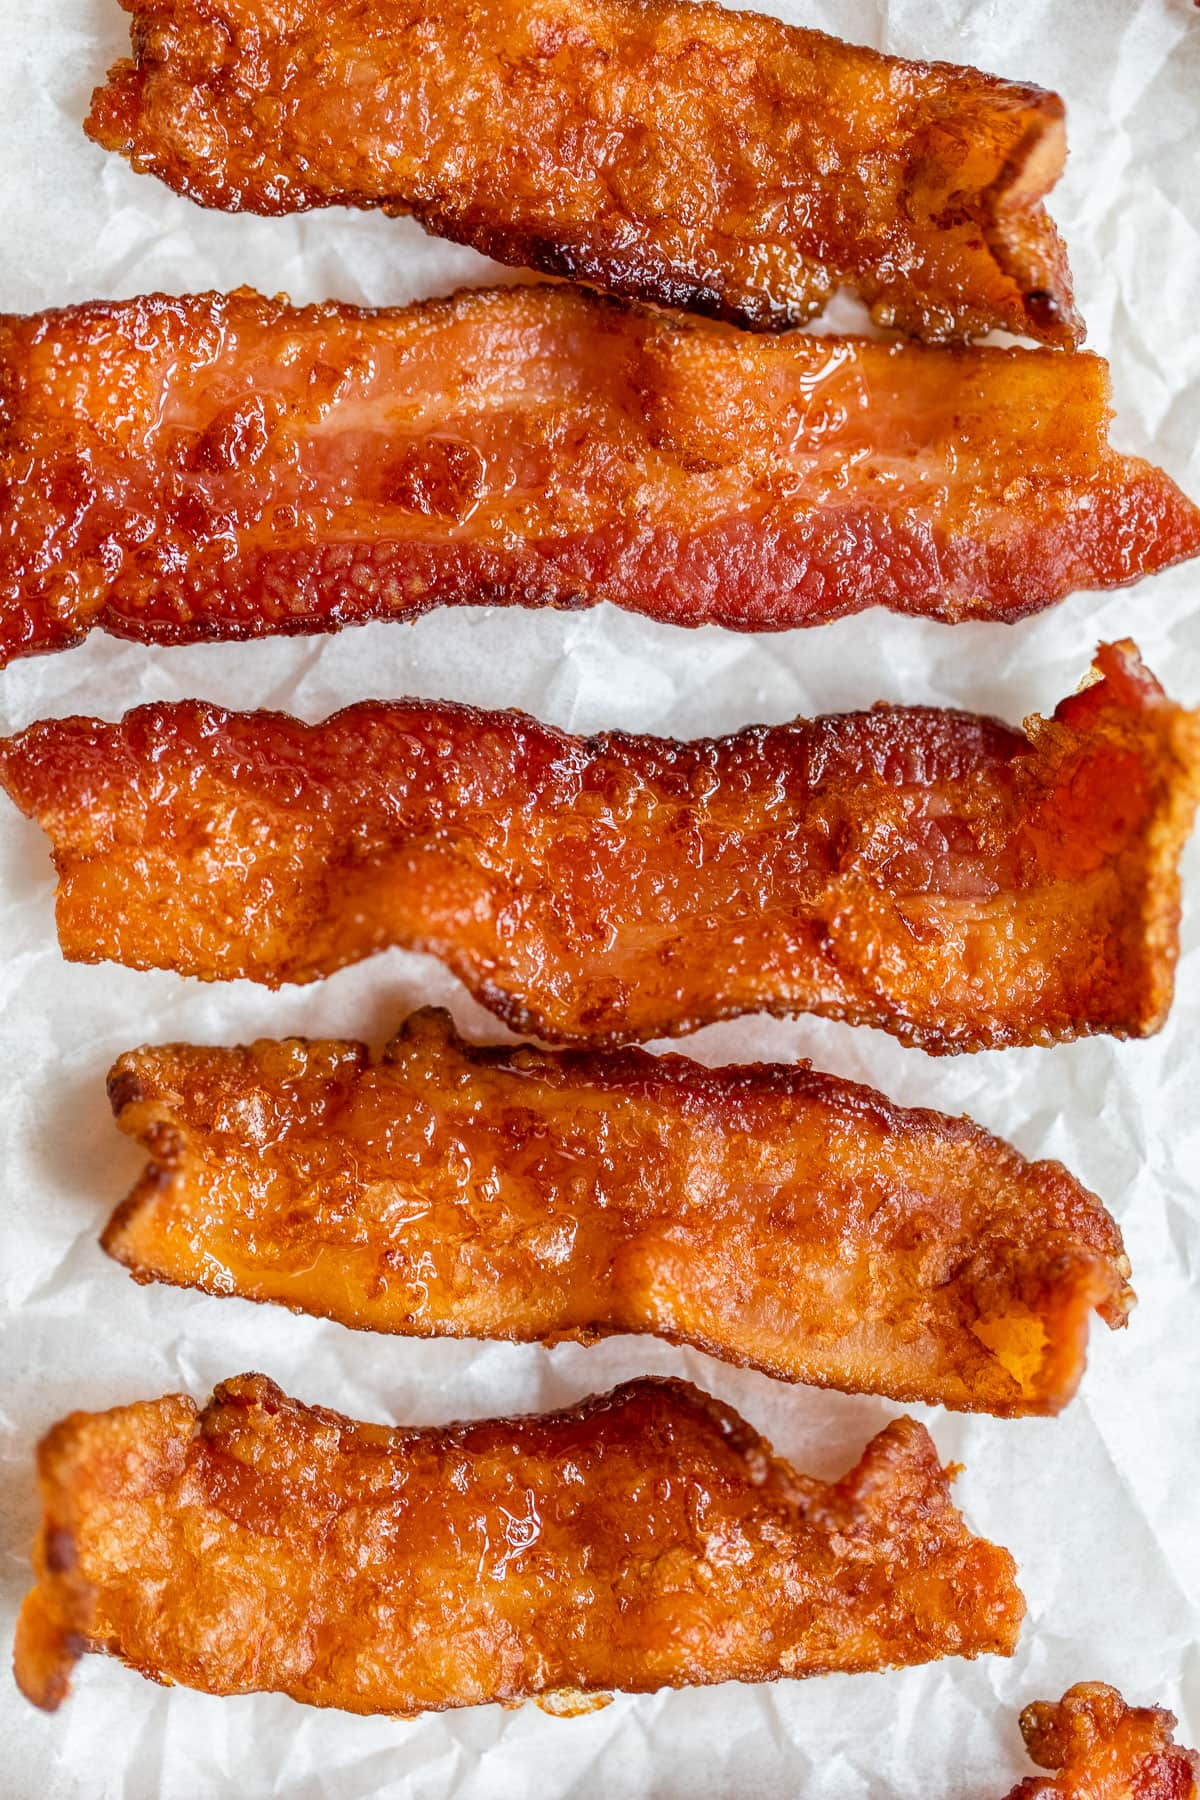 Pieces of crispy air fryer bacon